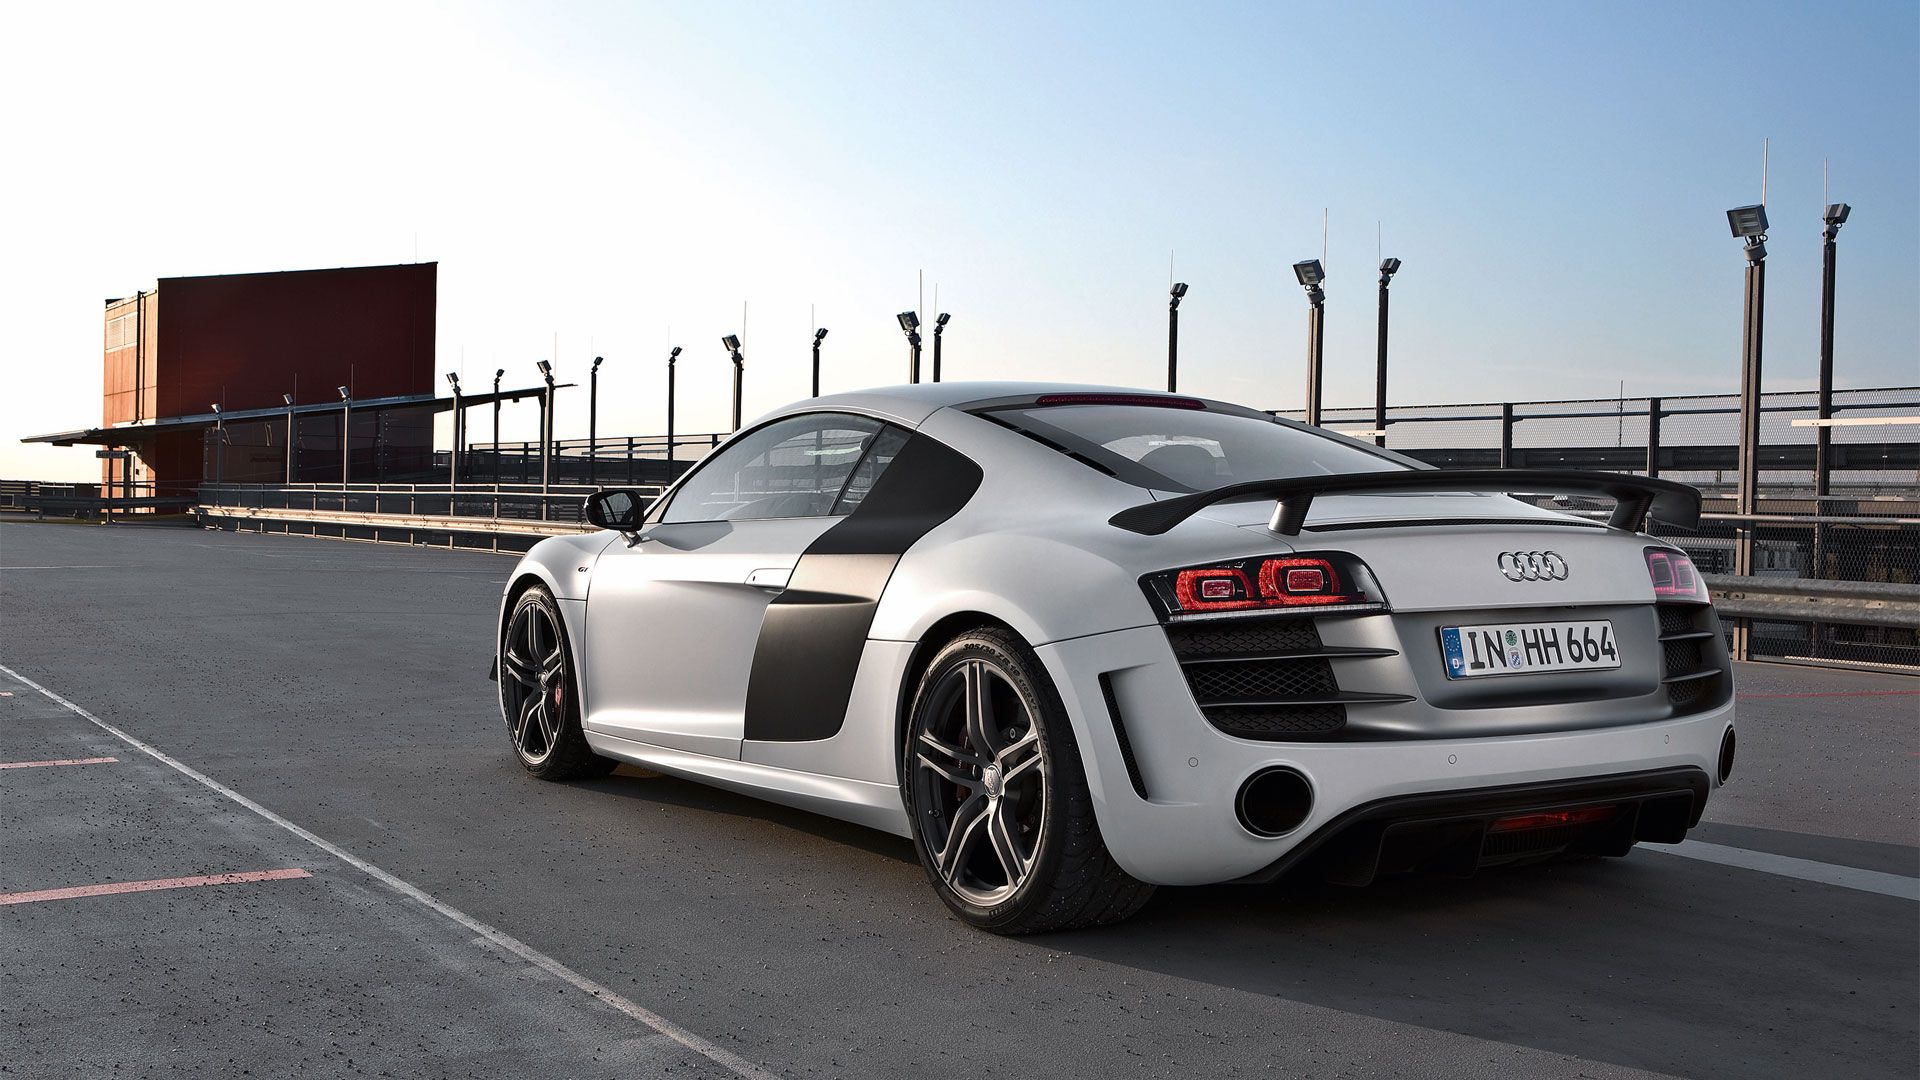 Fantastic Audi R8 Wallpaper 45520 46745 Hd Wallpapers